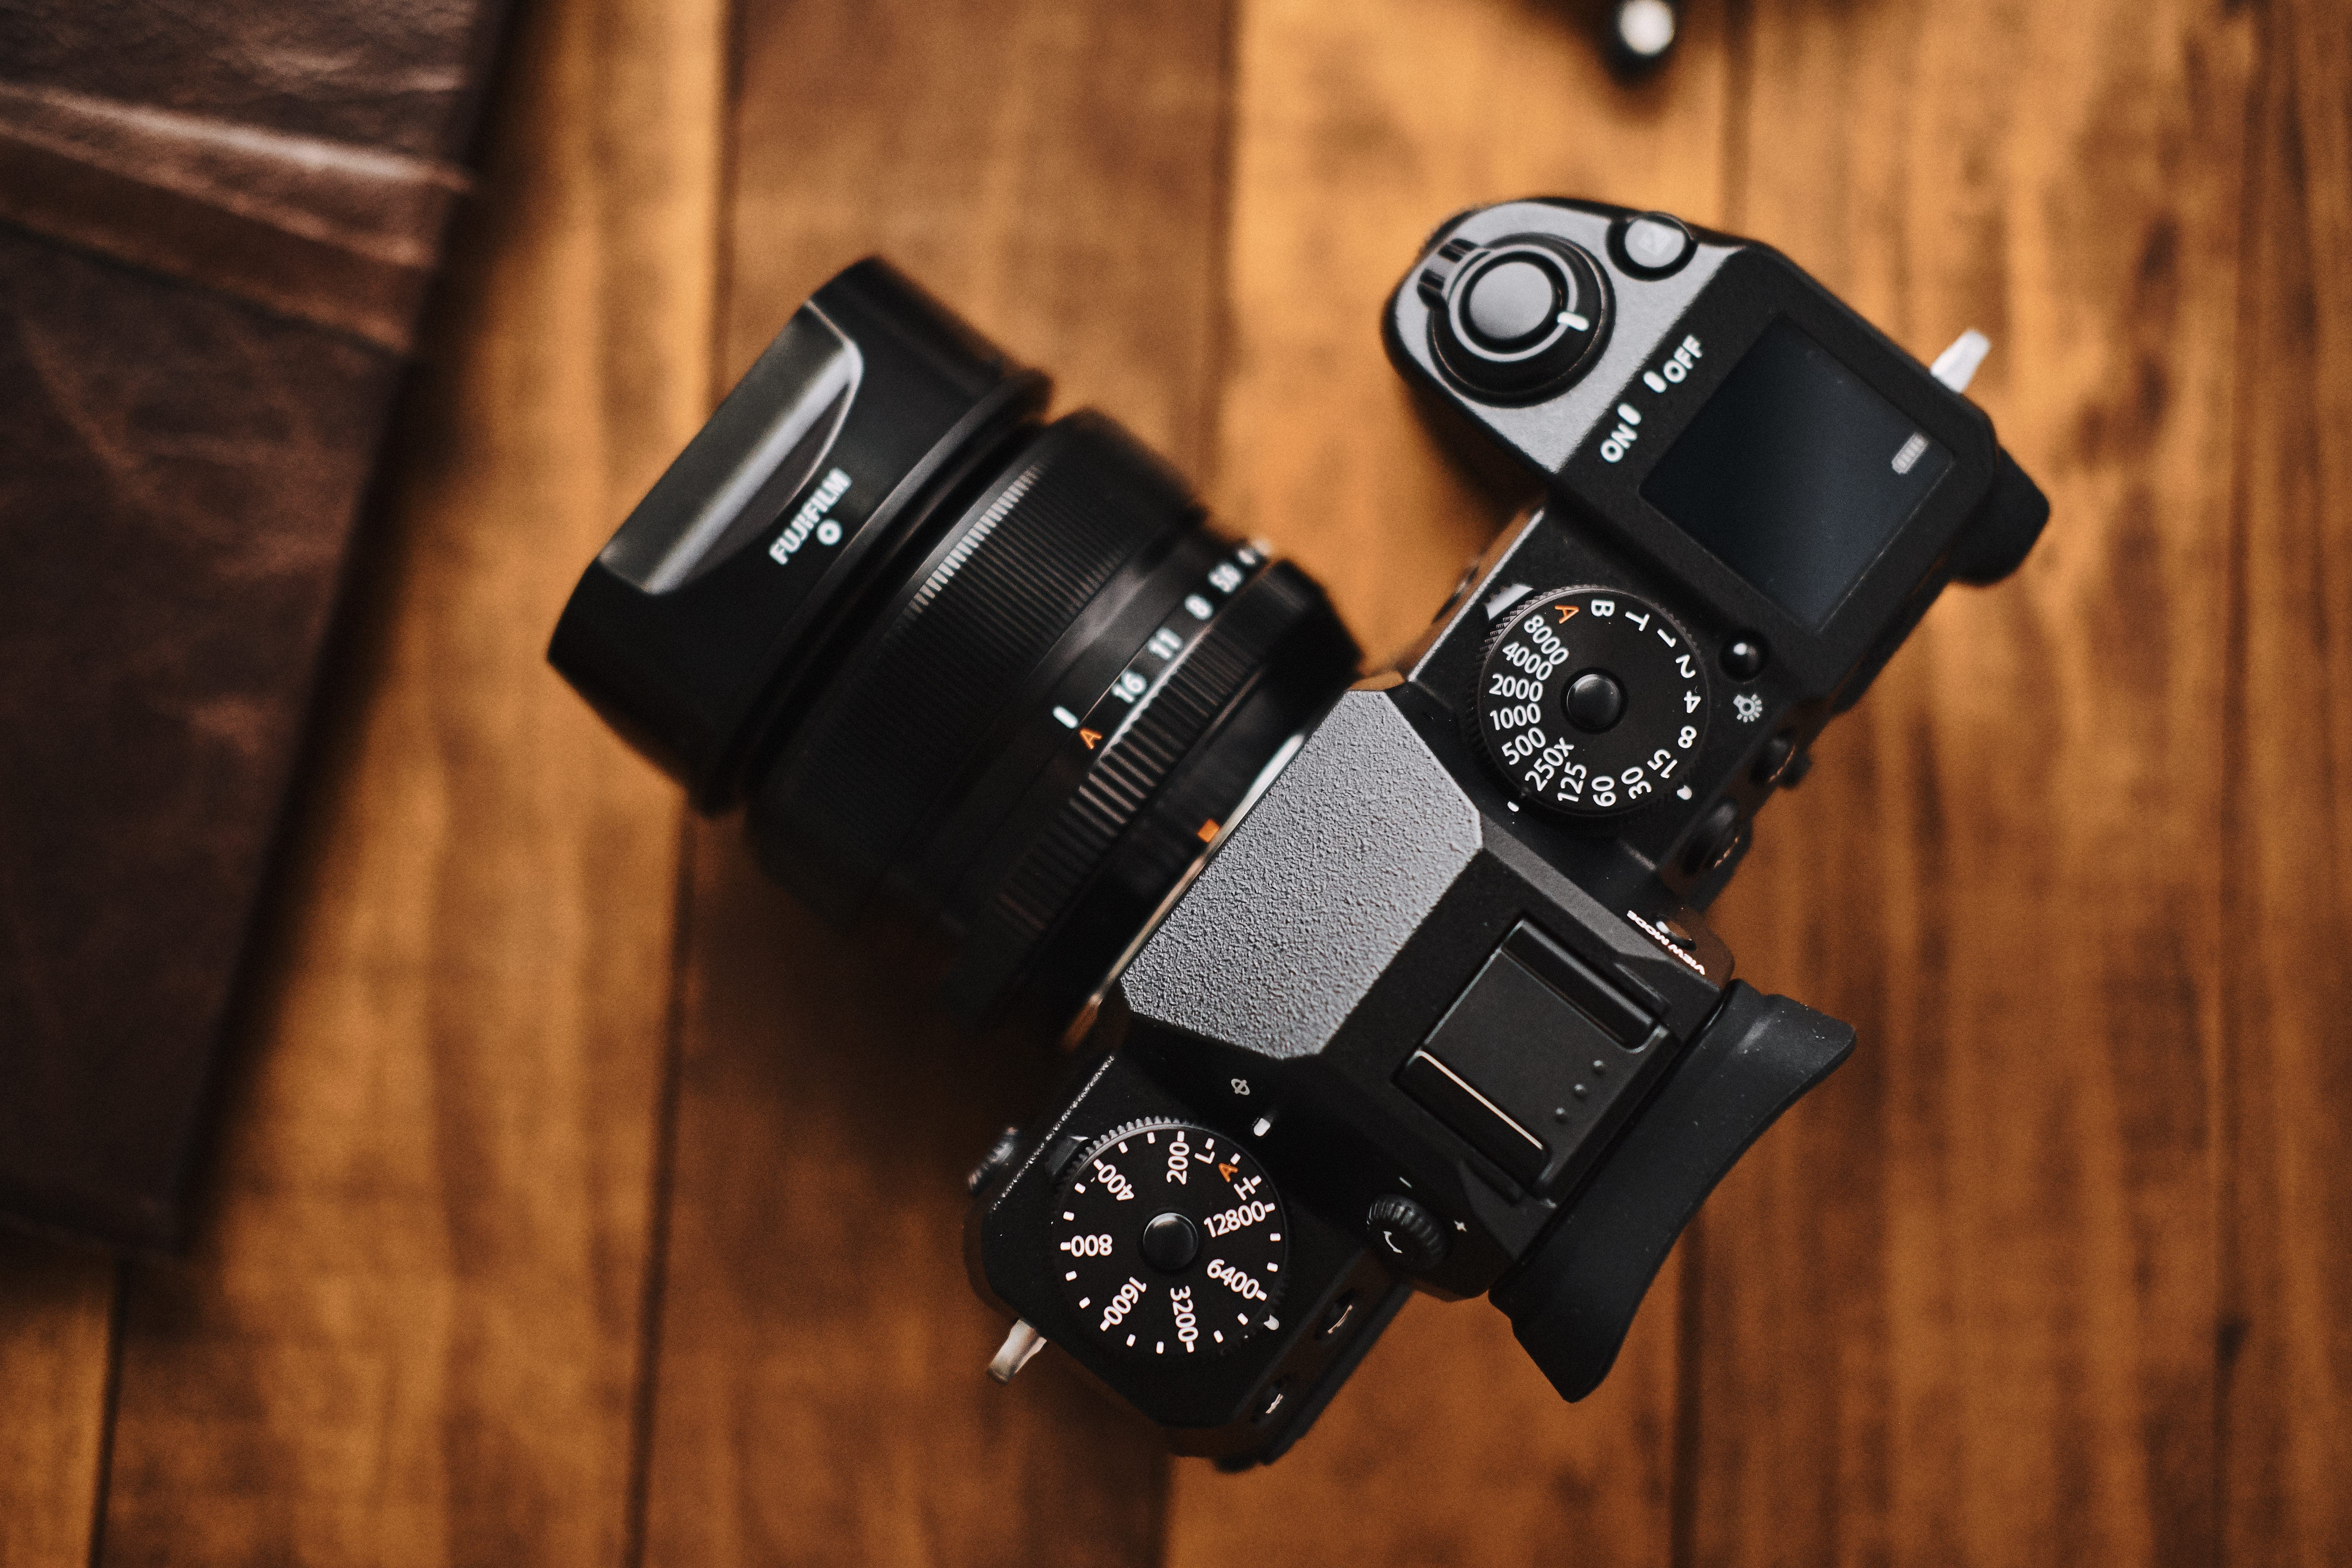 I Was Wrong About the Fujifilm XH1; It's a Pretty Great Camera